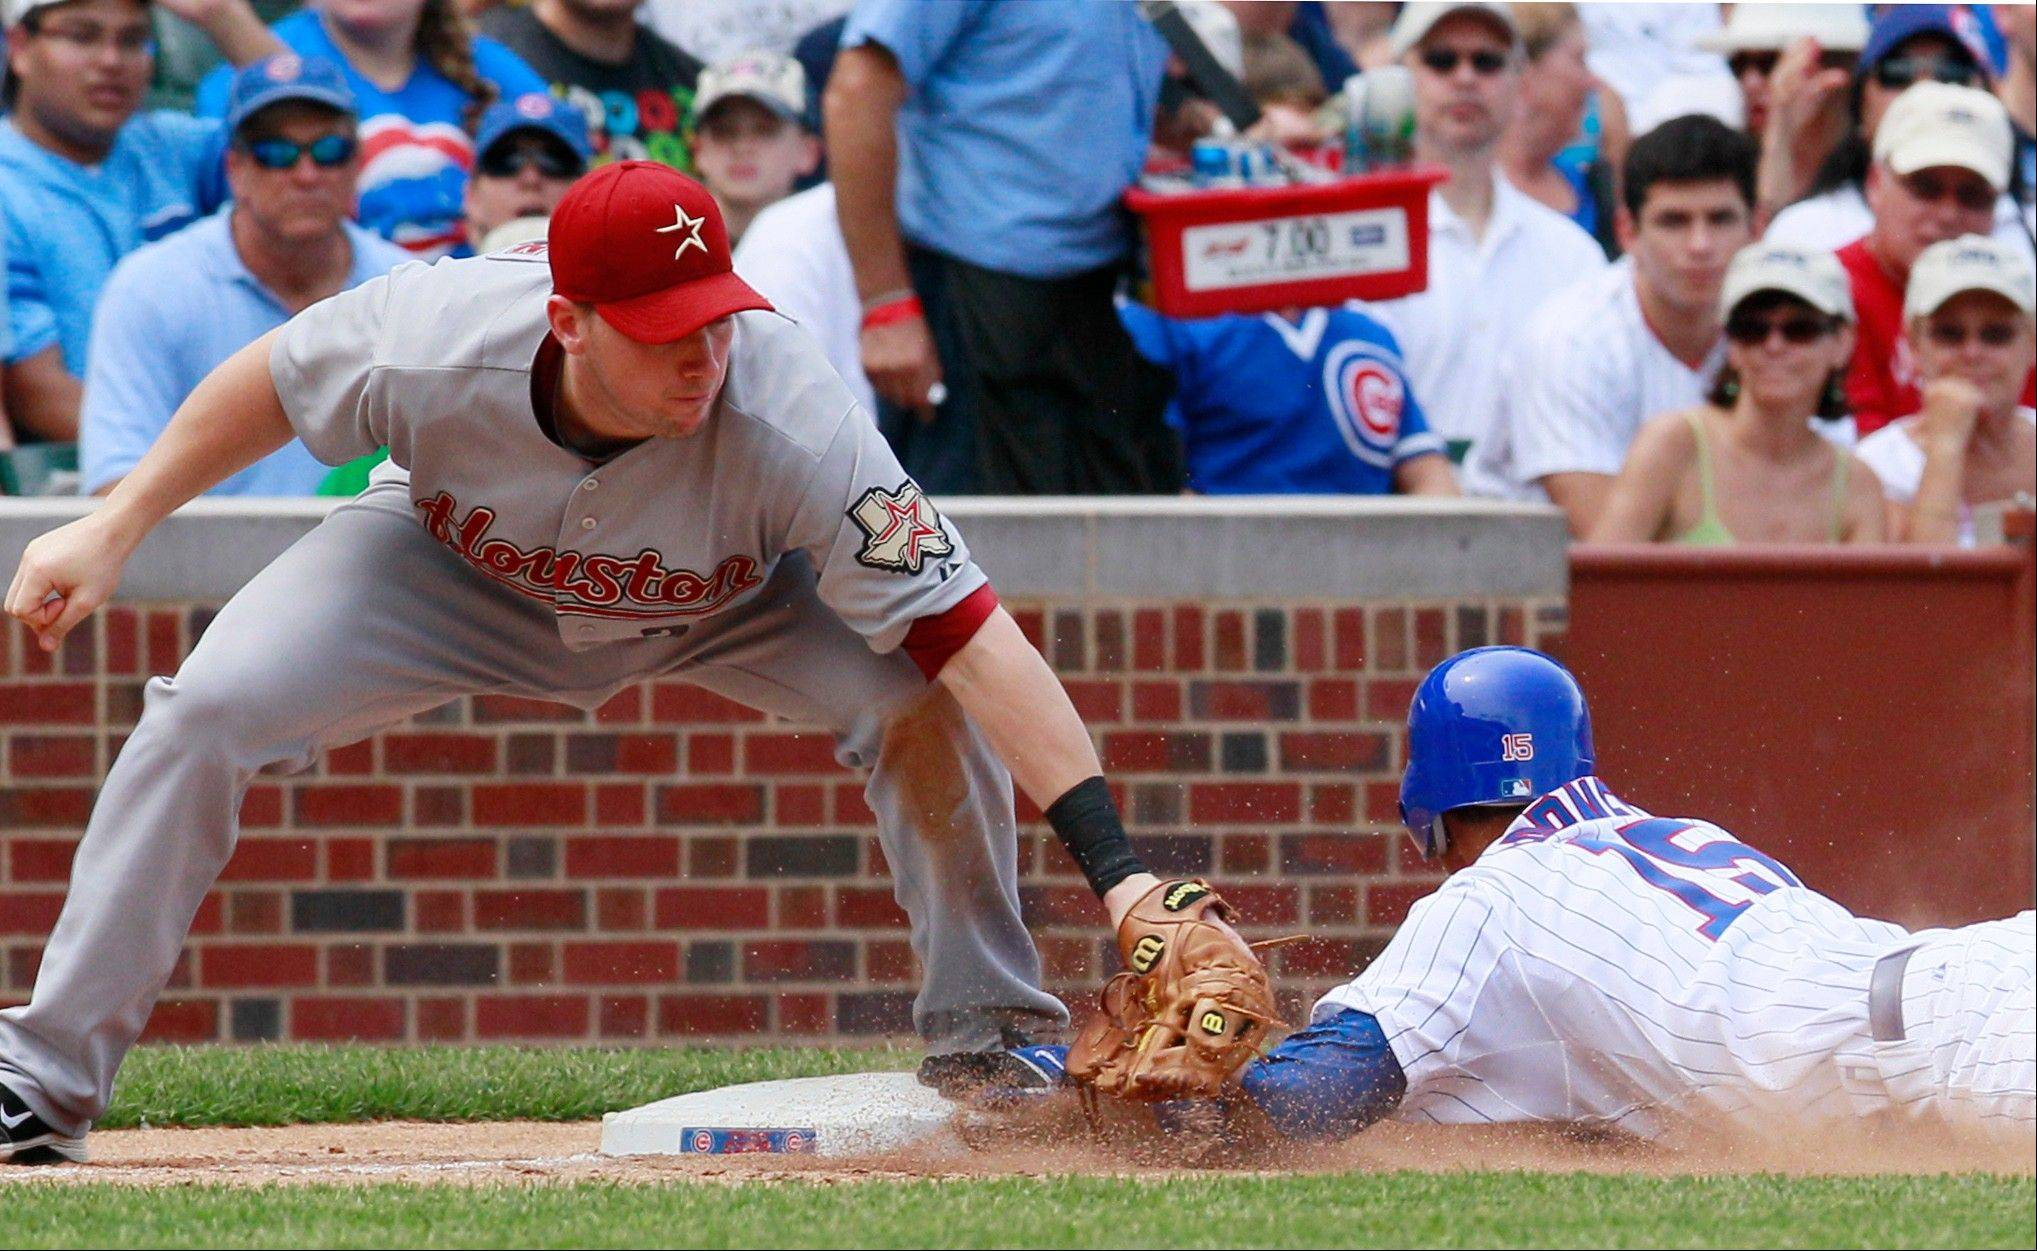 Darwin Barney, right, steals third as Houston's Chris Johnson applies a late tag during the fifth inning of the Cubs' win at Wrigley Field on Friday.